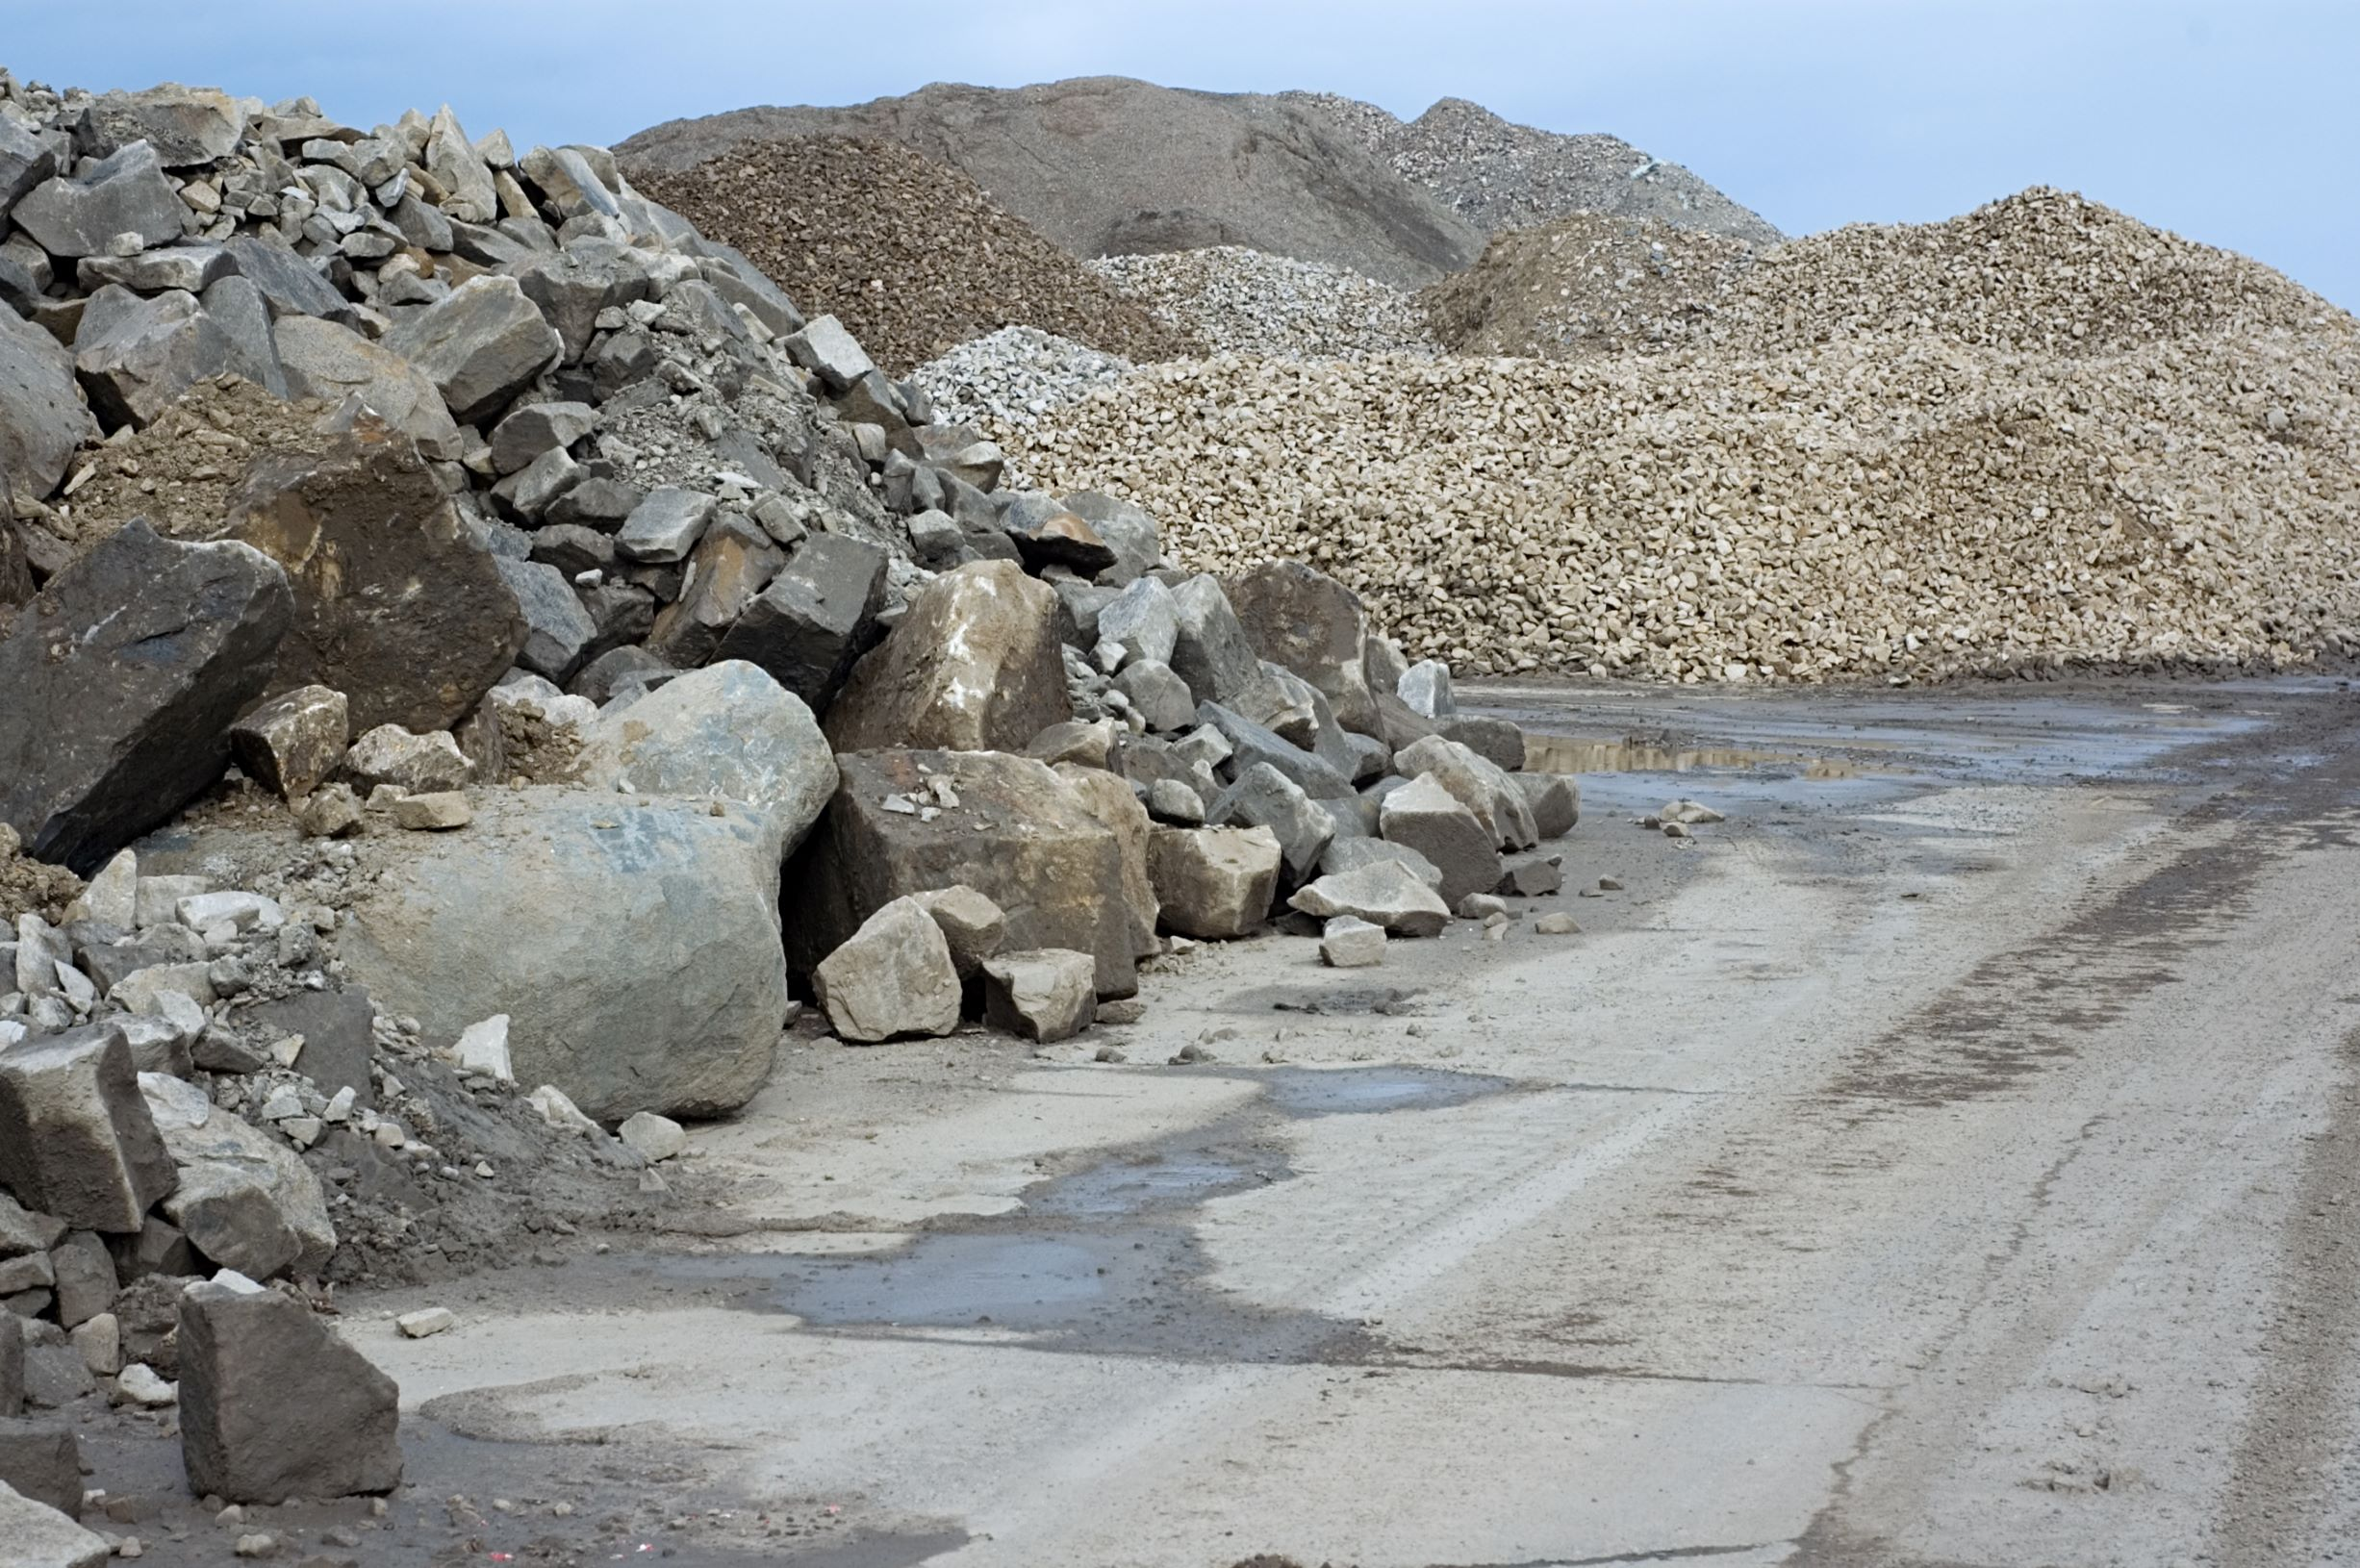 Largest stone mining companies in the world 2020